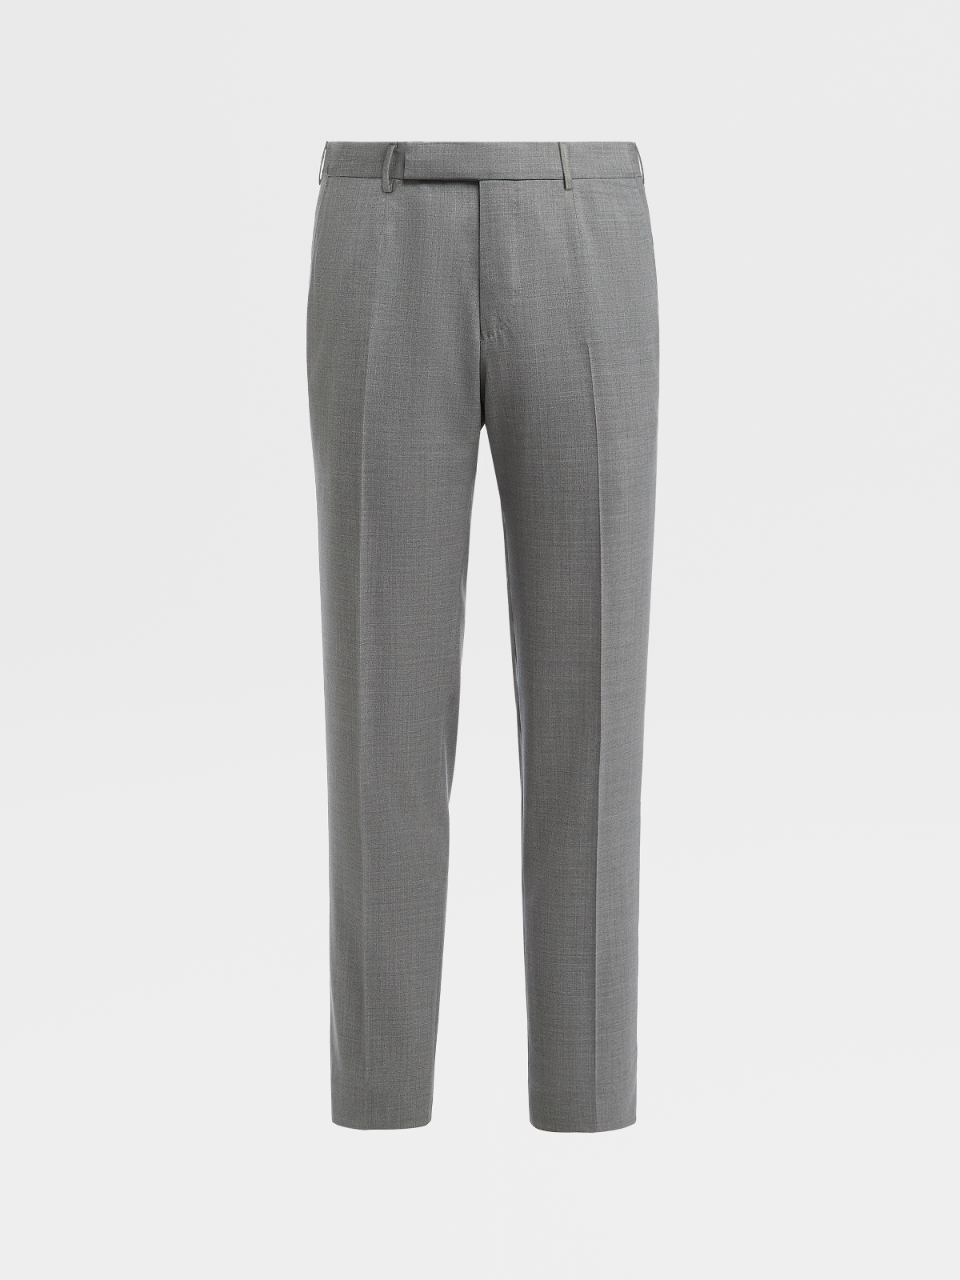 High Performance Wool Trousers